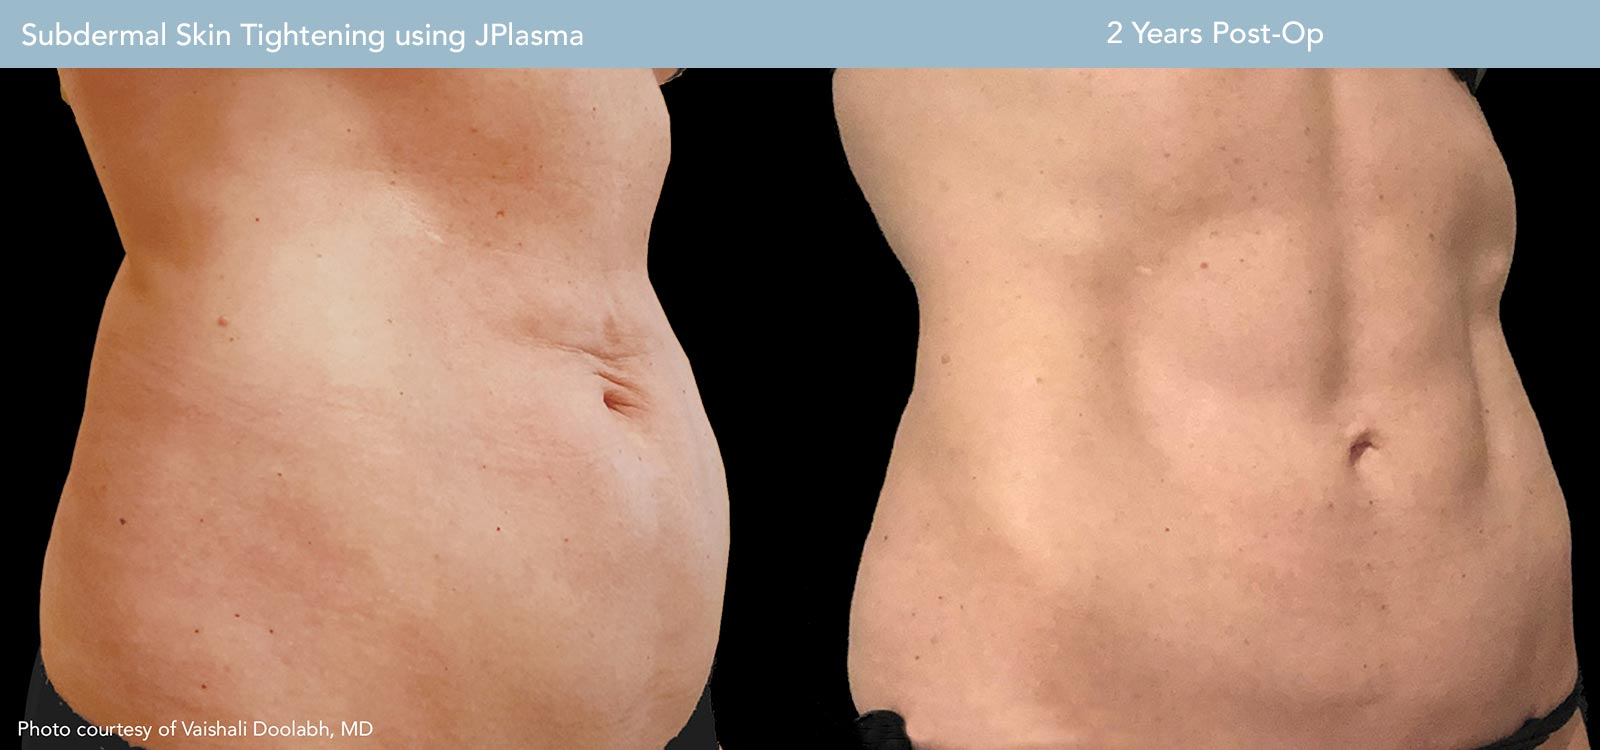 Subdermal Skin Tightening Before and After Case